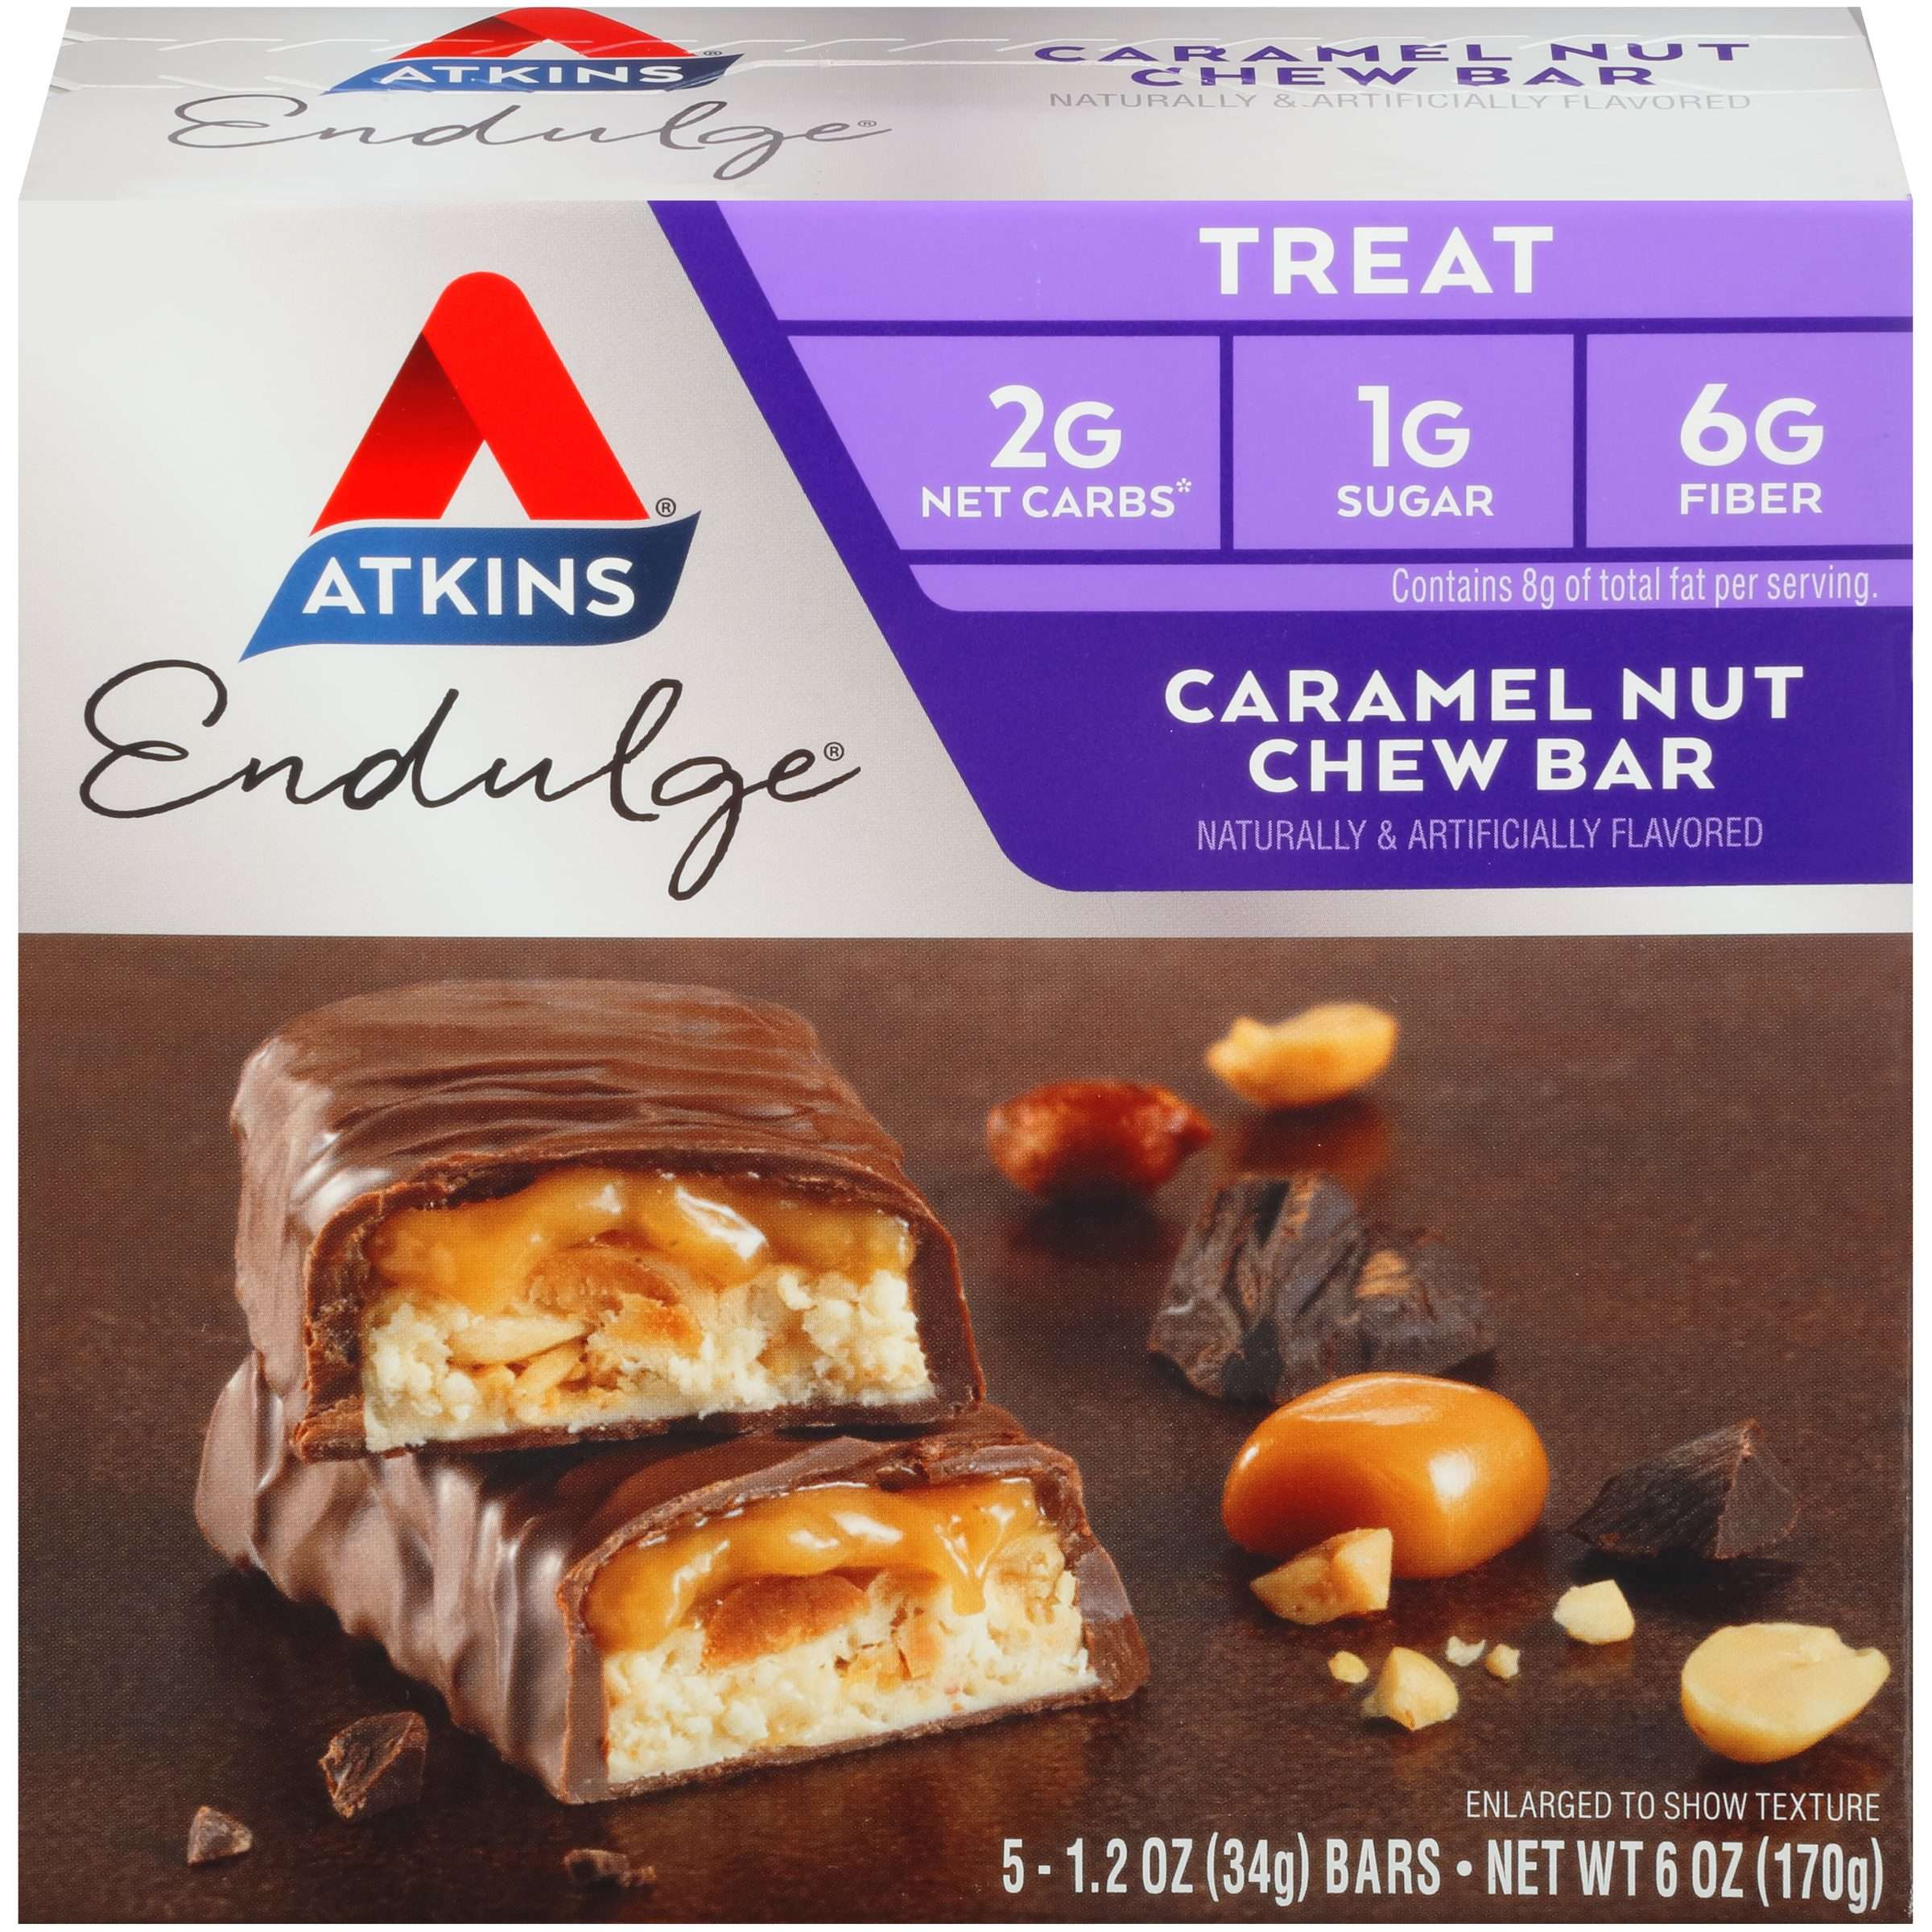 Atkins Endulge Caramel Nut Chew Bar, 1.2oz, 5-pack (Treat)